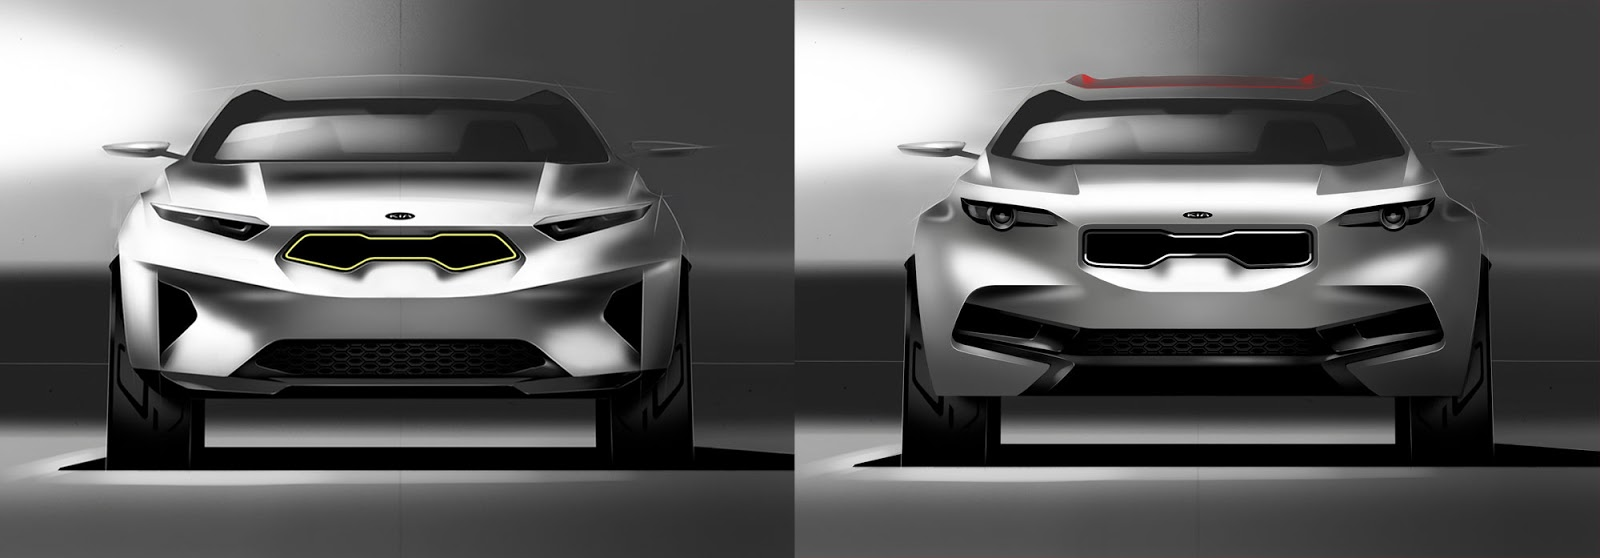 Kia Stonic sketch - two styling options for the nose